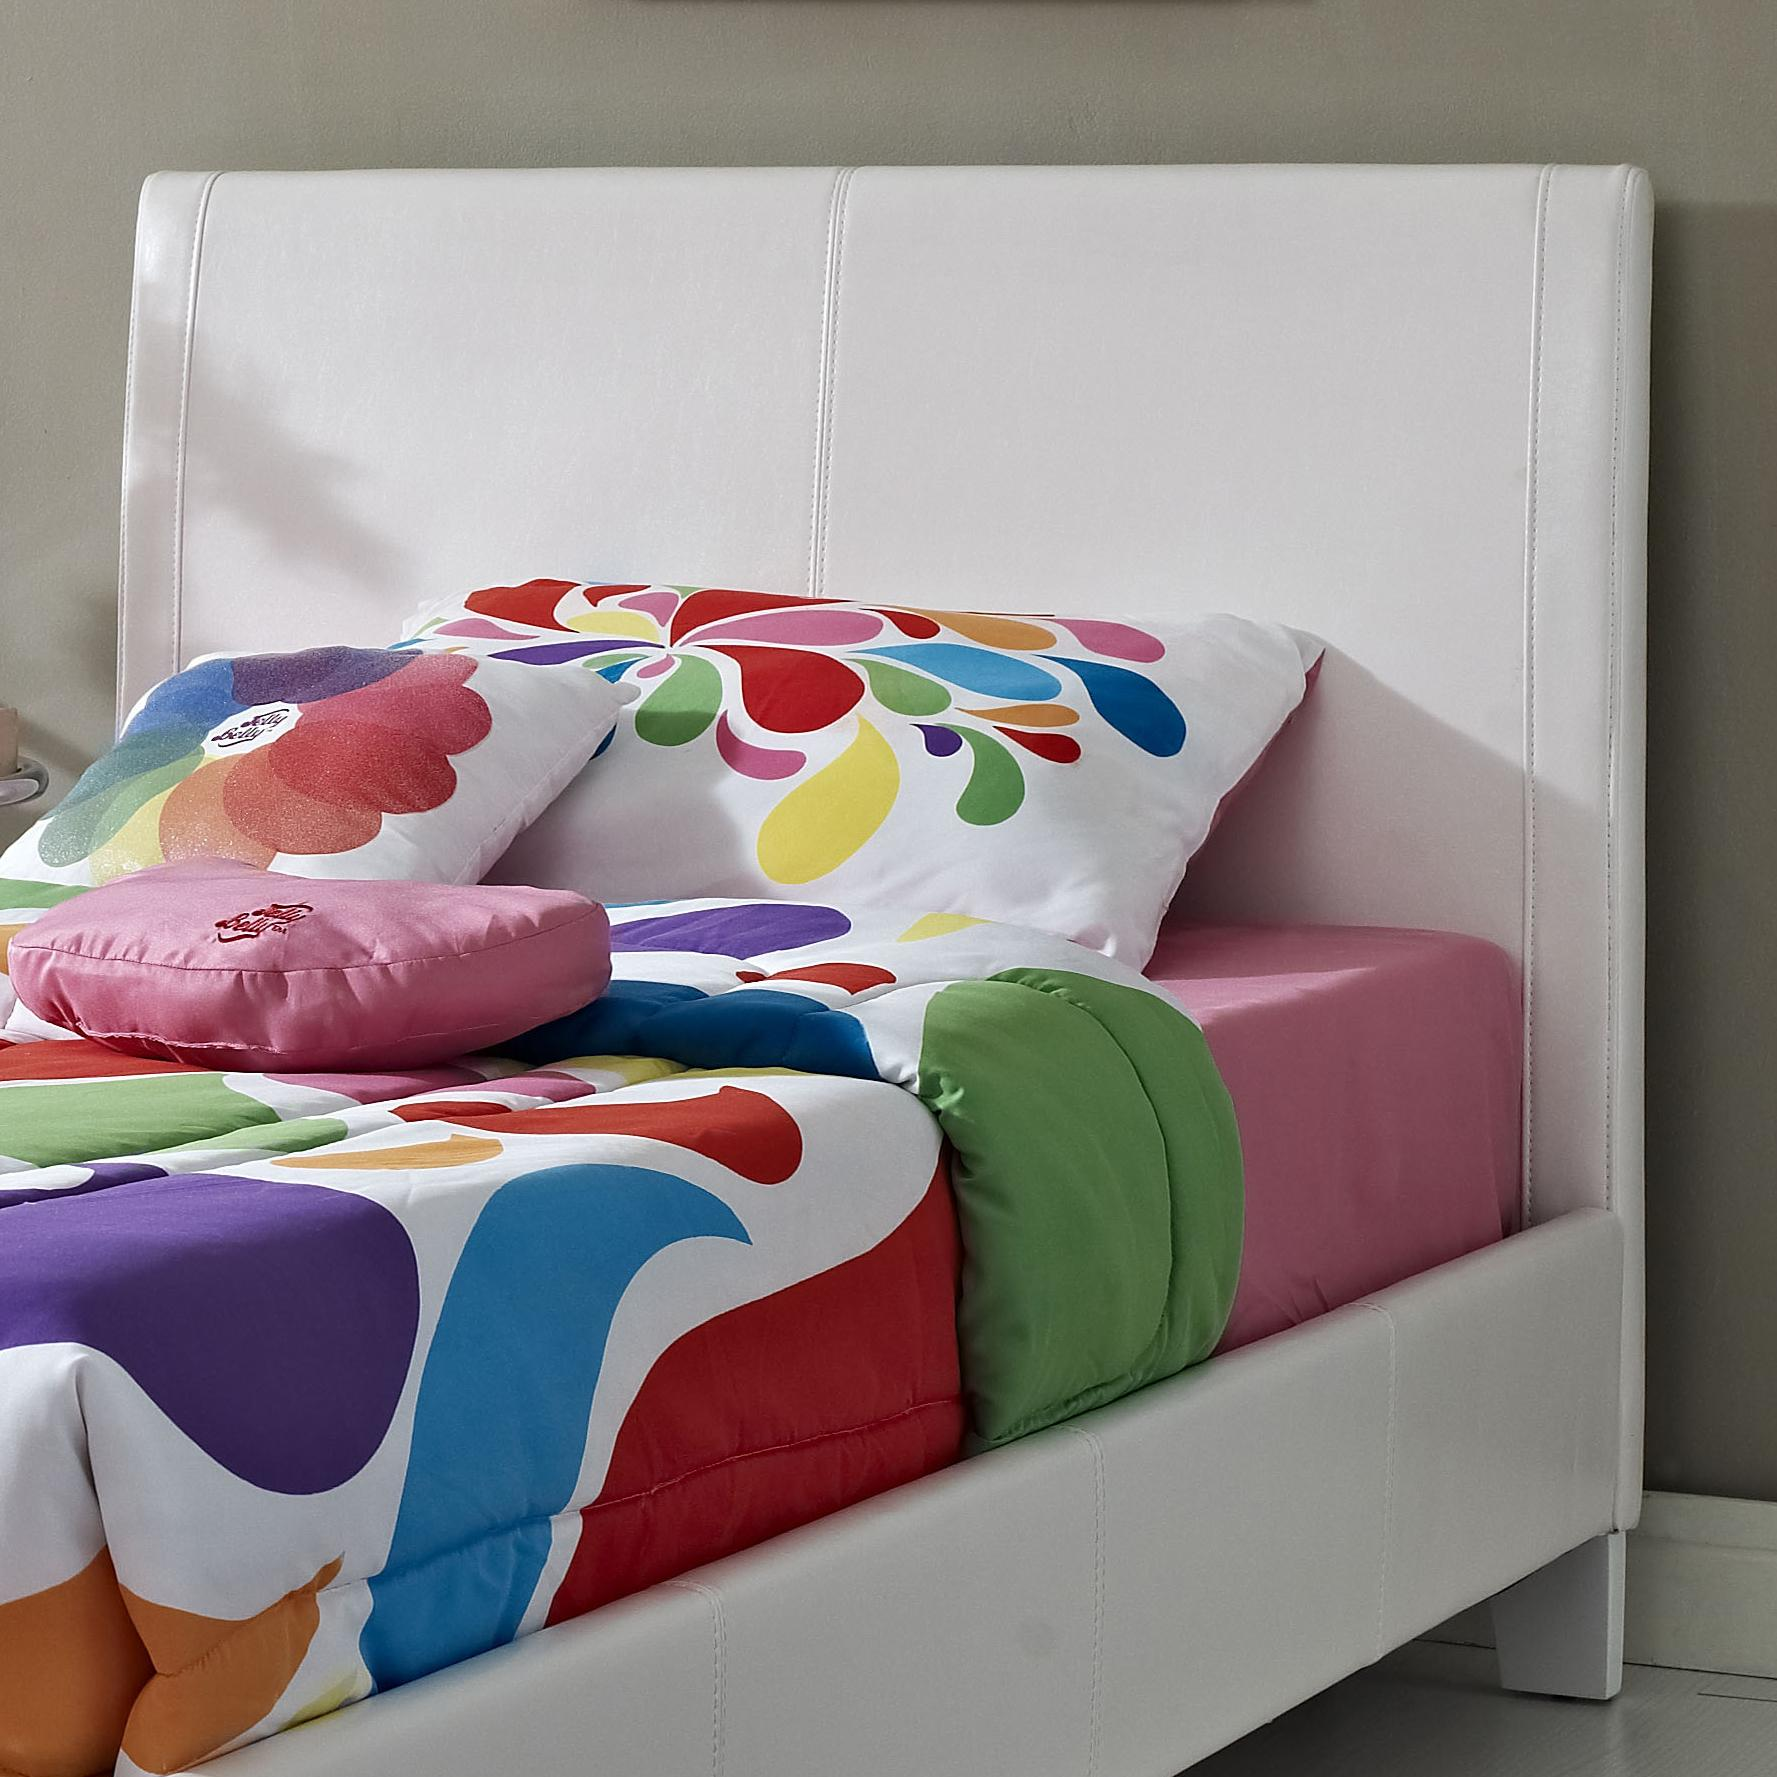 Fantasia Twin Upholstered Headboard by Standard Furniture at Rooms for Less